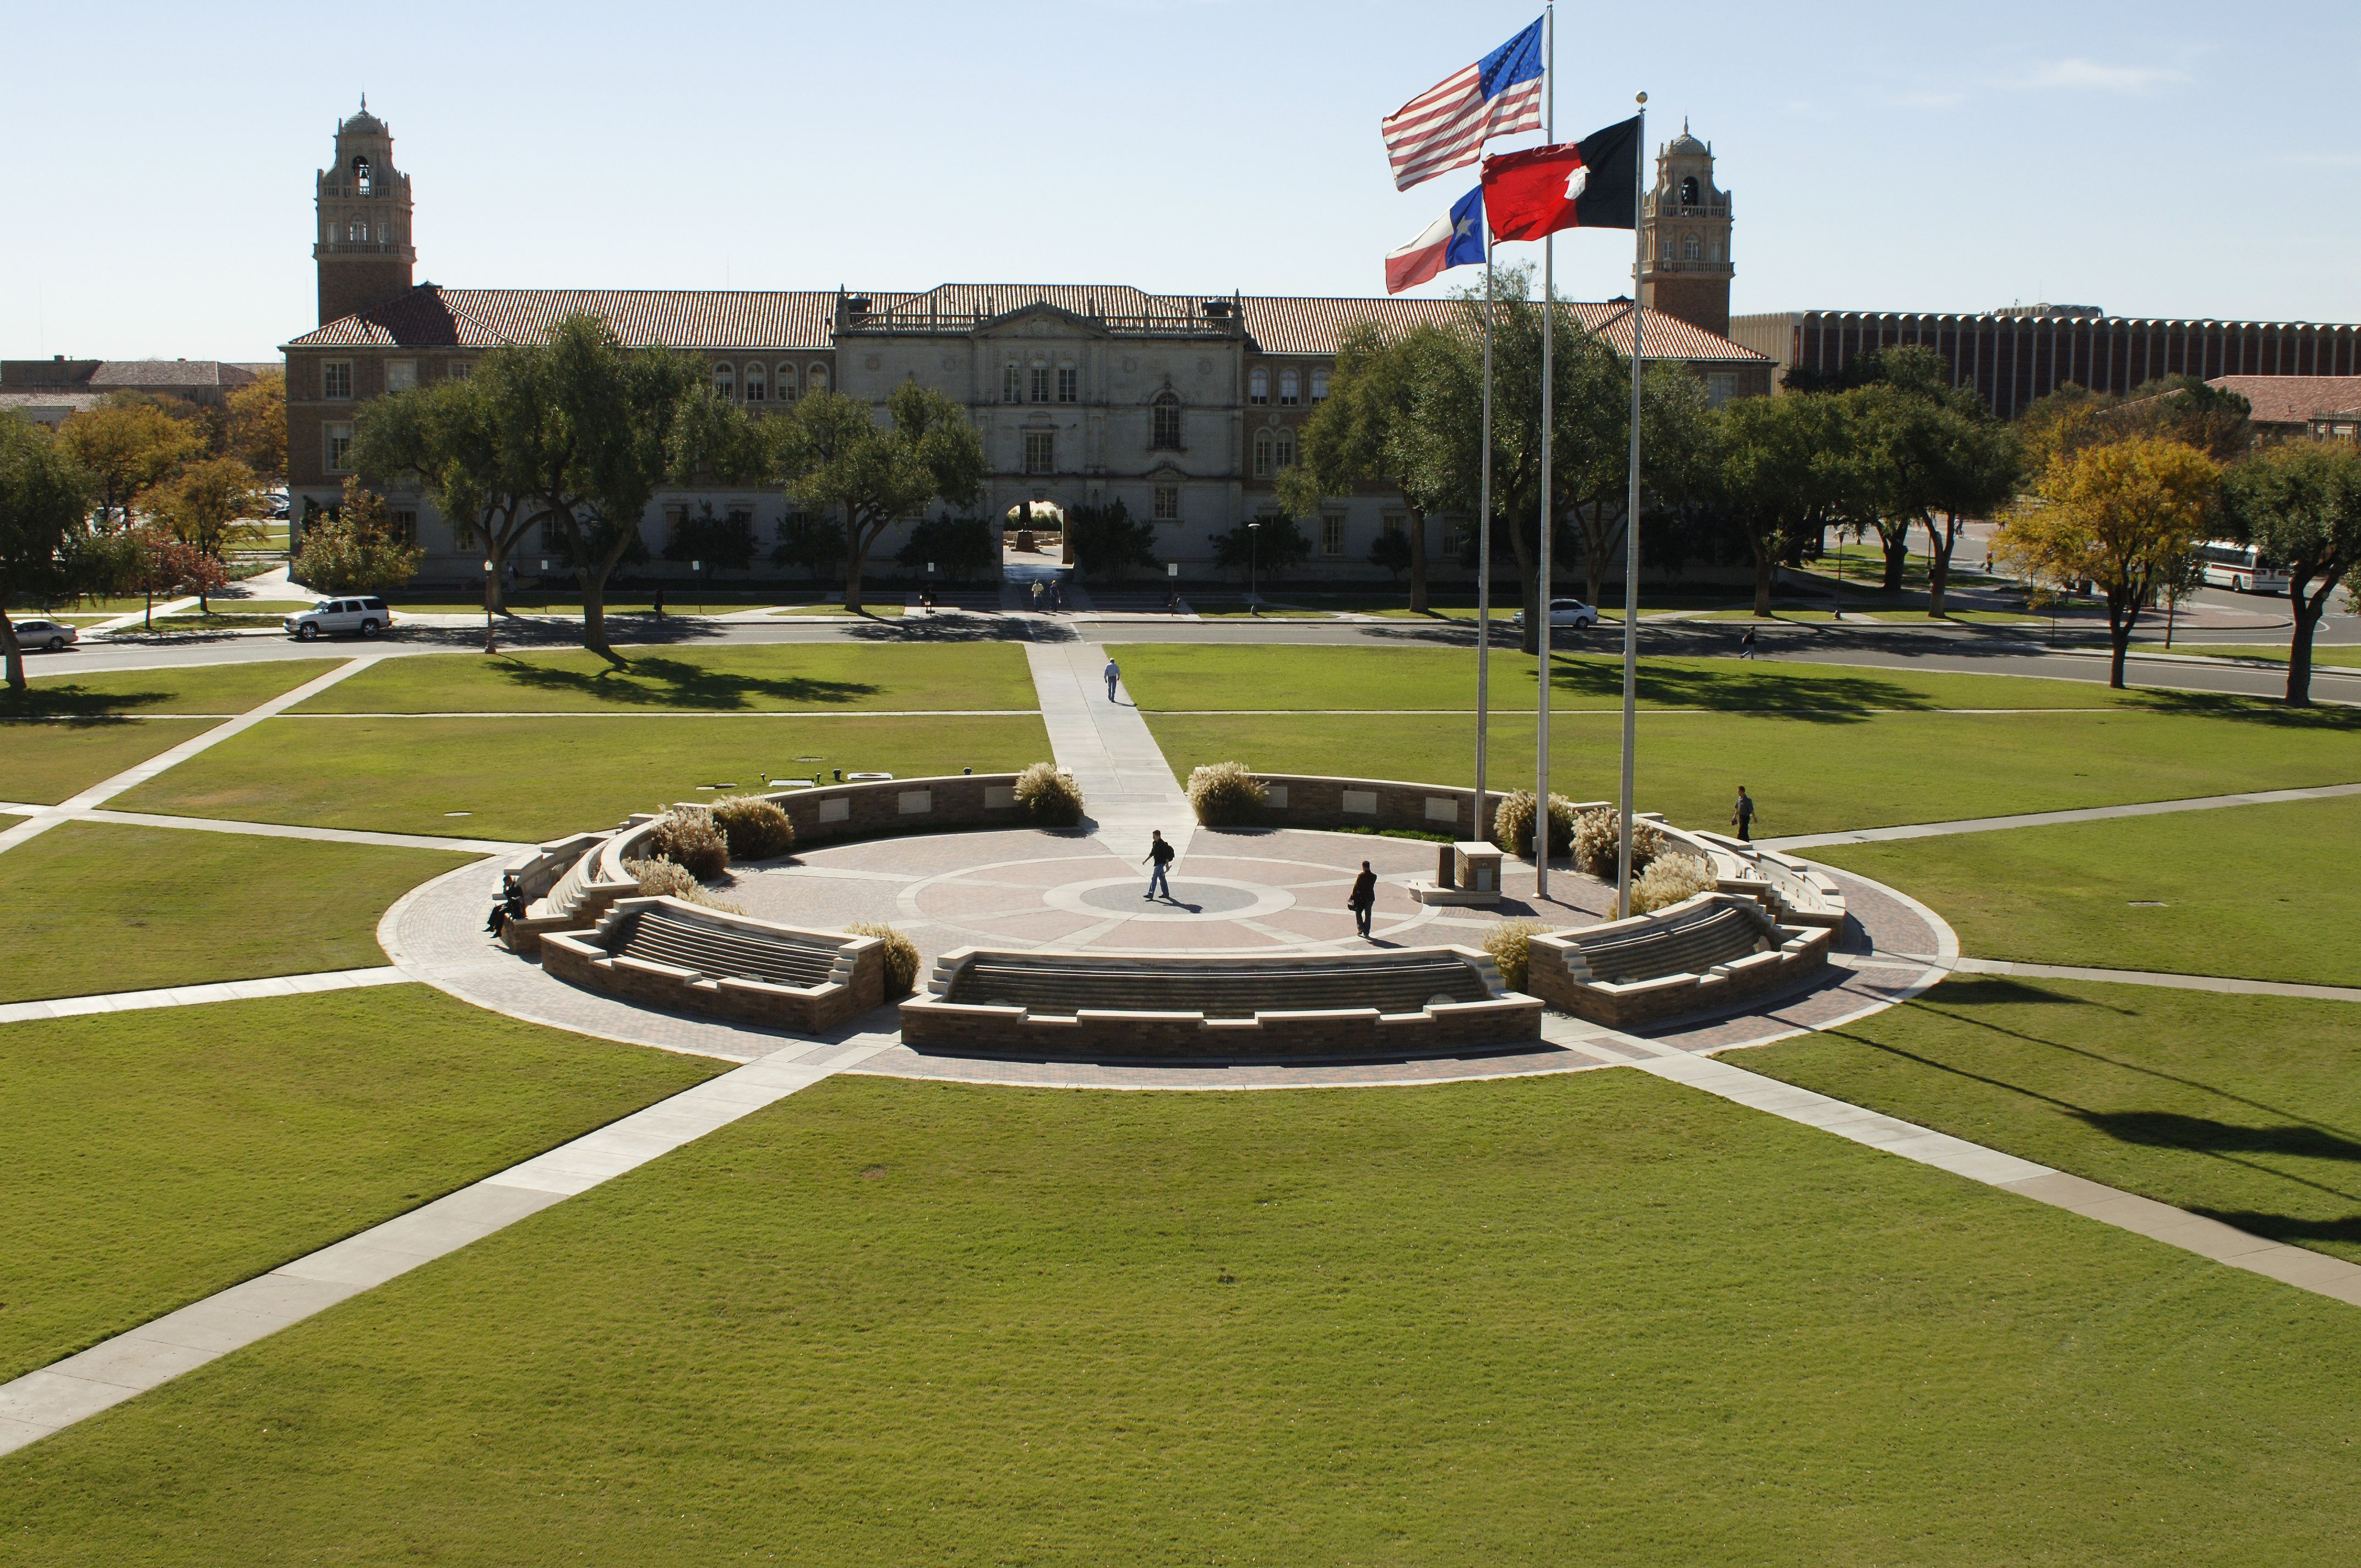 Favorite Place ever my beautiful Texas Tech campus Miss it so